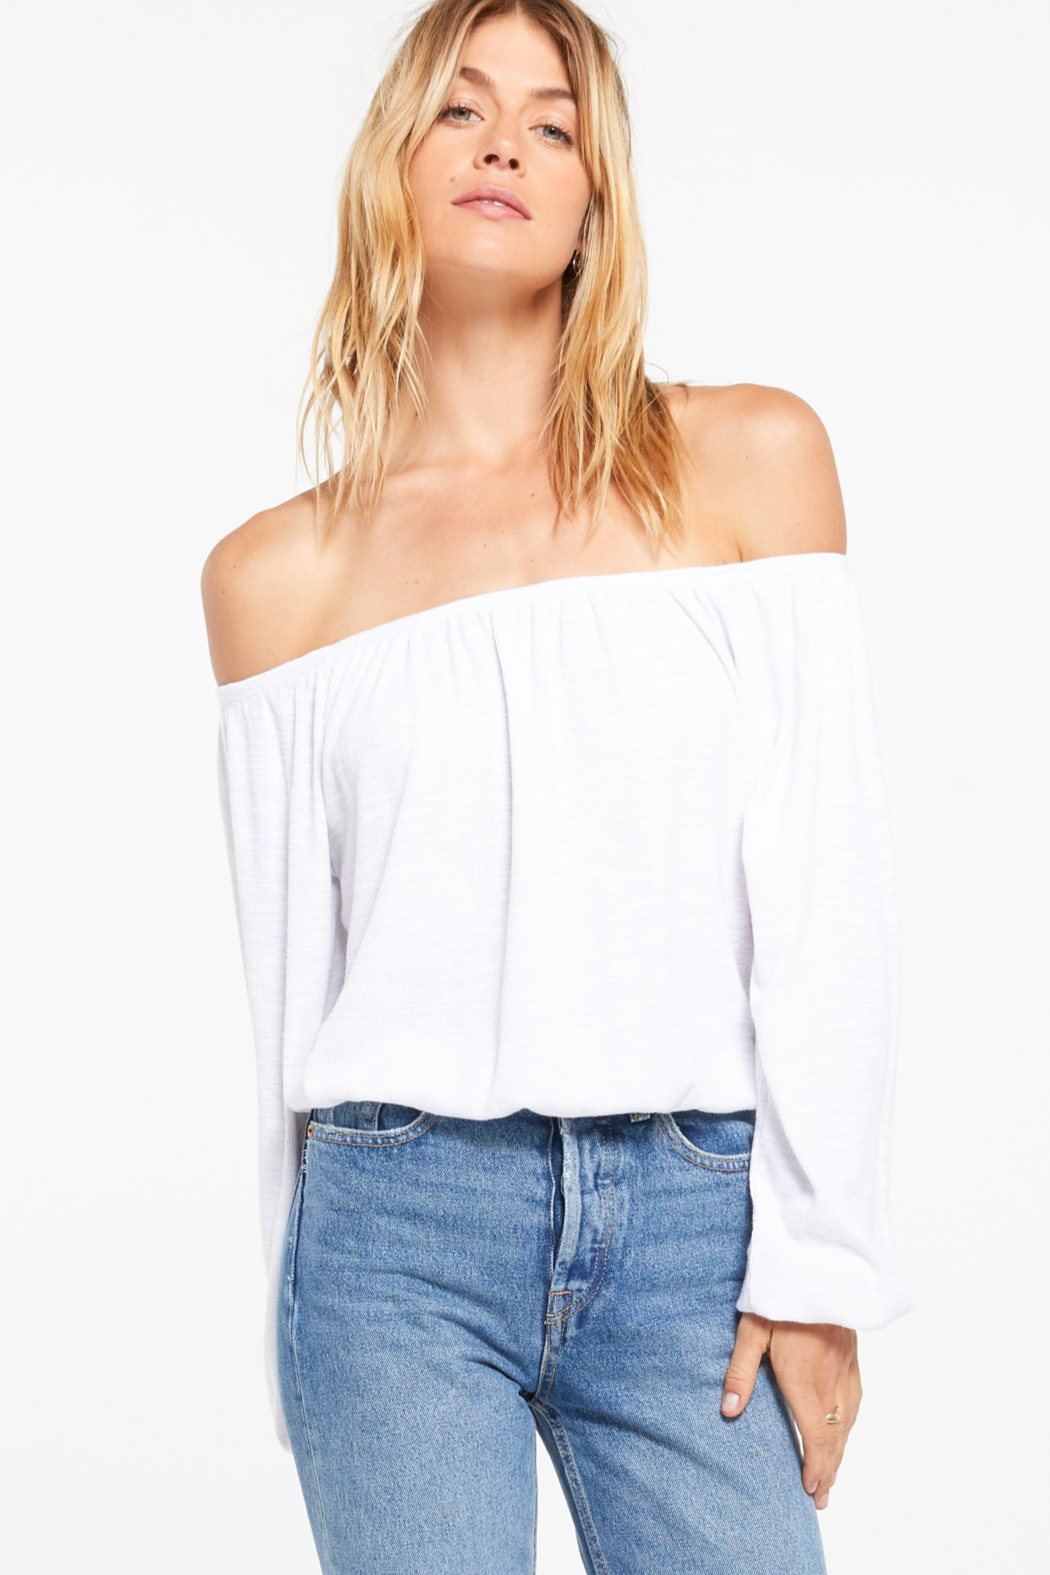 z supply Liv Slub Off Shoulder Top - Main Image